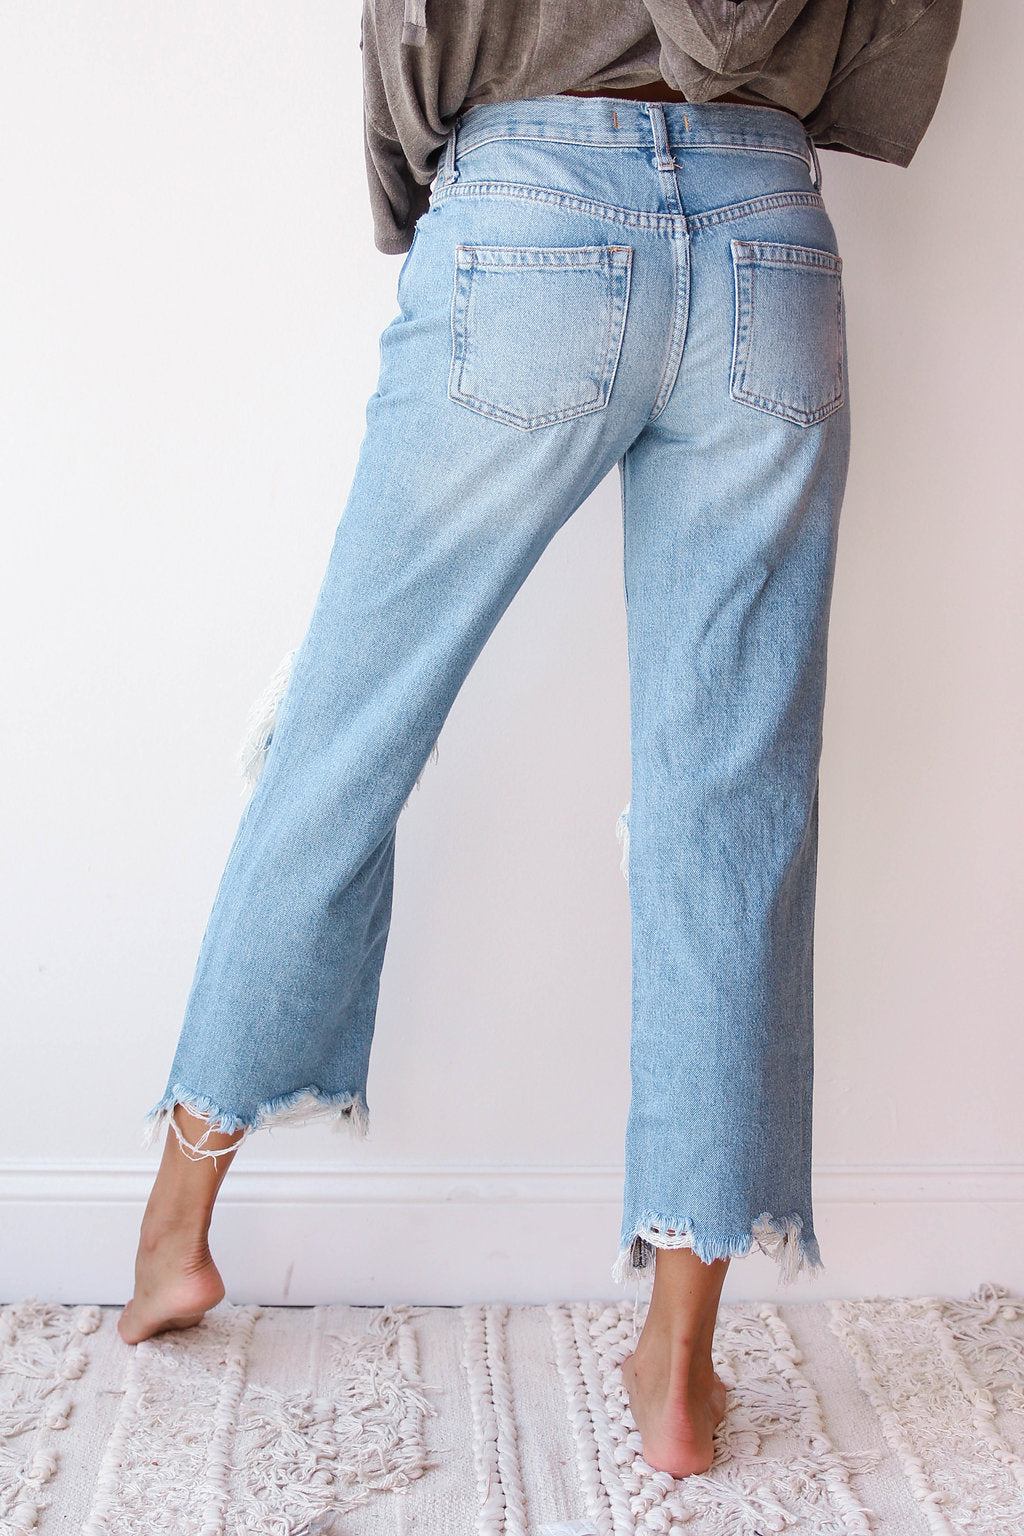 [shop name], mr. straight jean